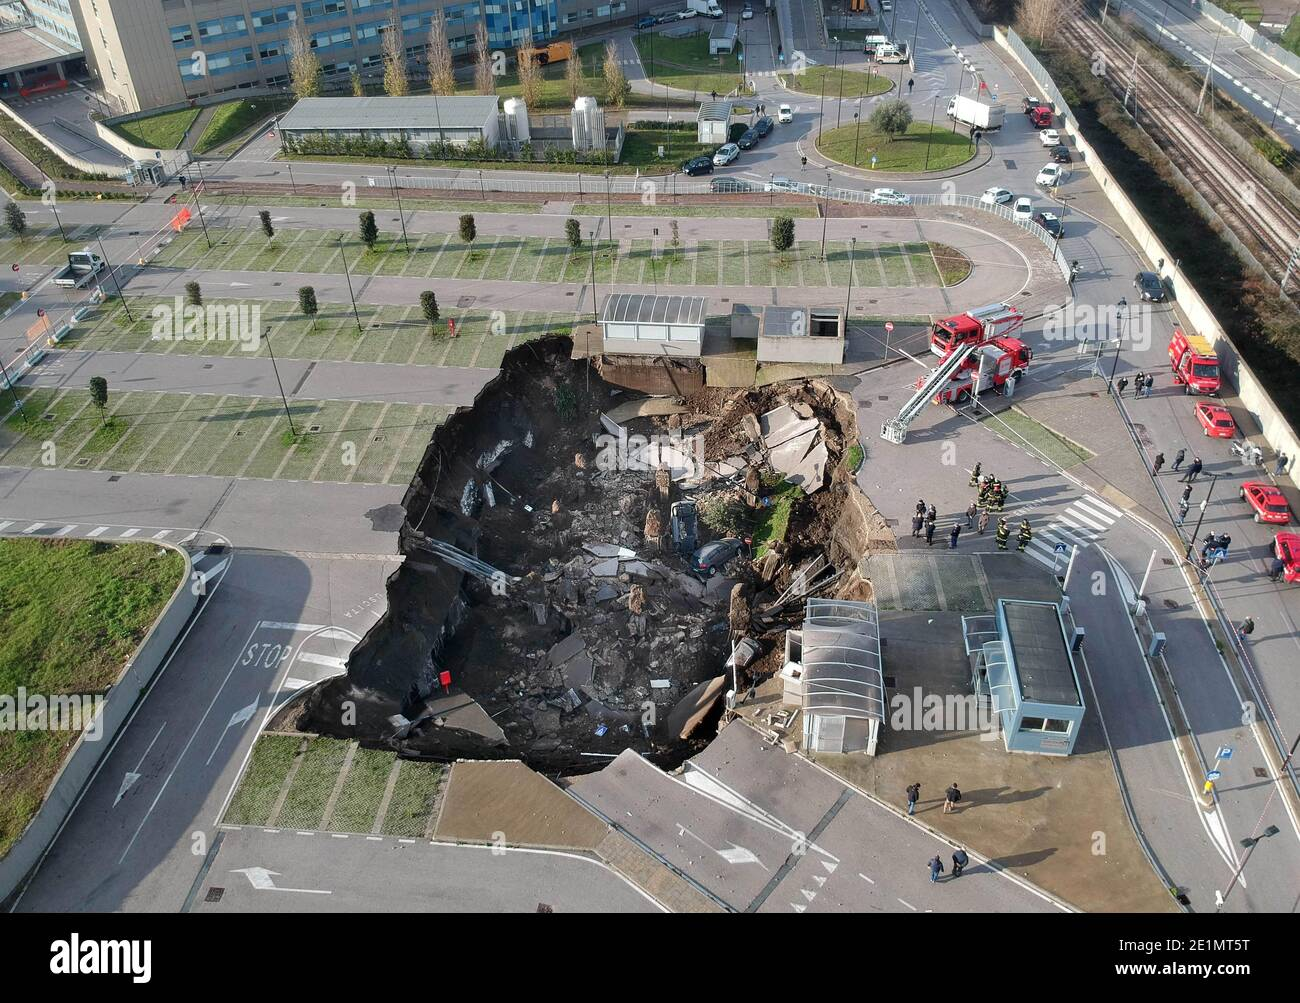 Naples, Italy. 08th Jan, 2021. Naples Ospedale del Mare explosion in the night opens a 50-meter chasm, the Covid residence evacuated Editorial Usage Only Credit: Independent Photo Agency/Alamy Live News Stock Photo